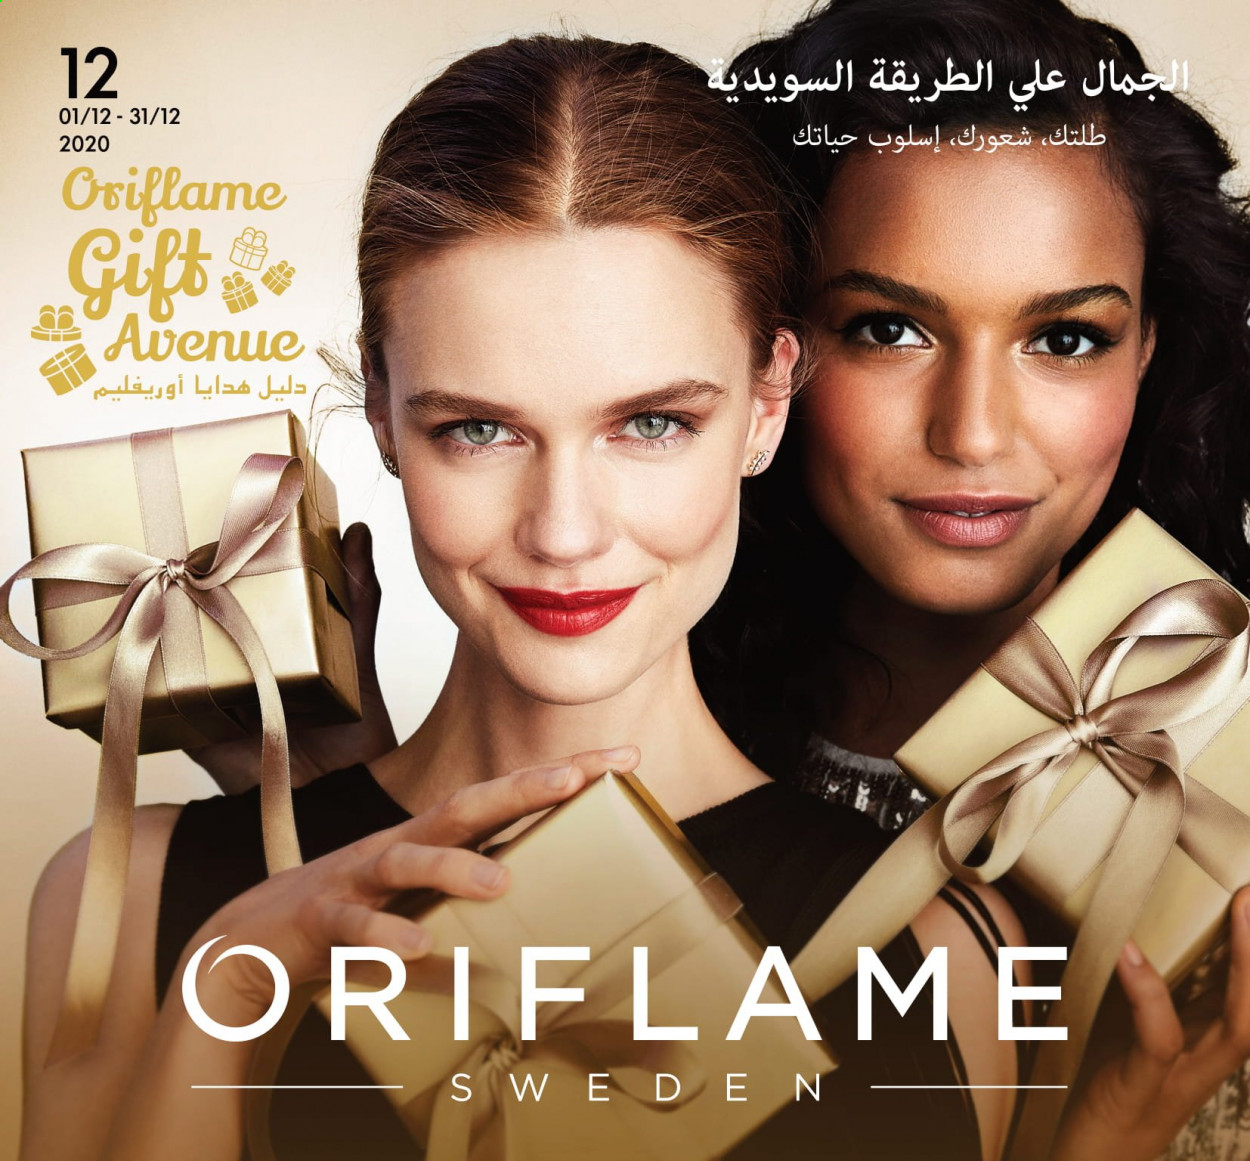 Oriflame Flyer  - 12.01.2020 - 12.31.2020. Page 1.